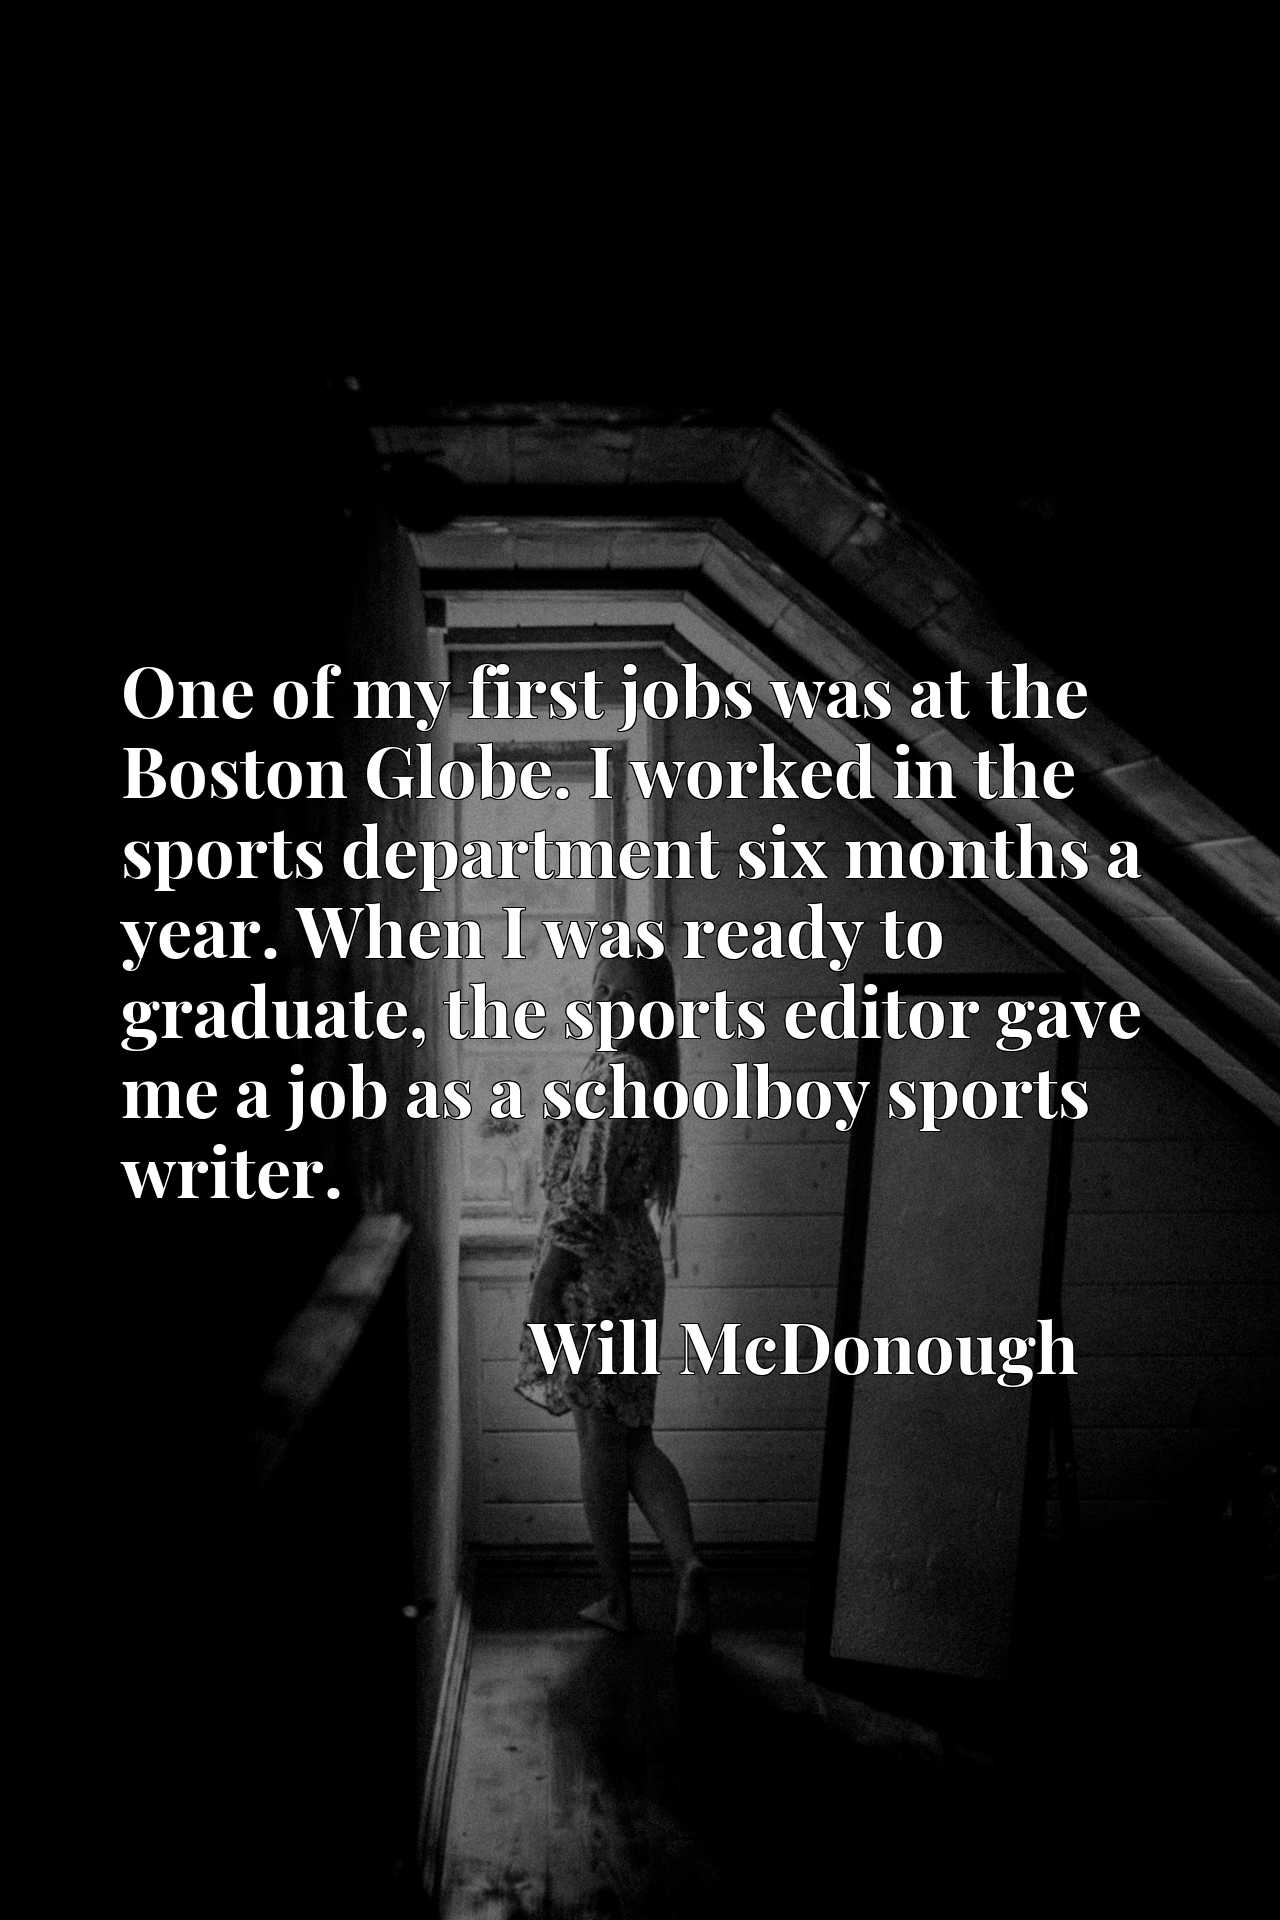 One of my first jobs was at the Boston Globe. I worked in the sports department six months a year. When I was ready to graduate, the sports editor gave me a job as a schoolboy sports writer.